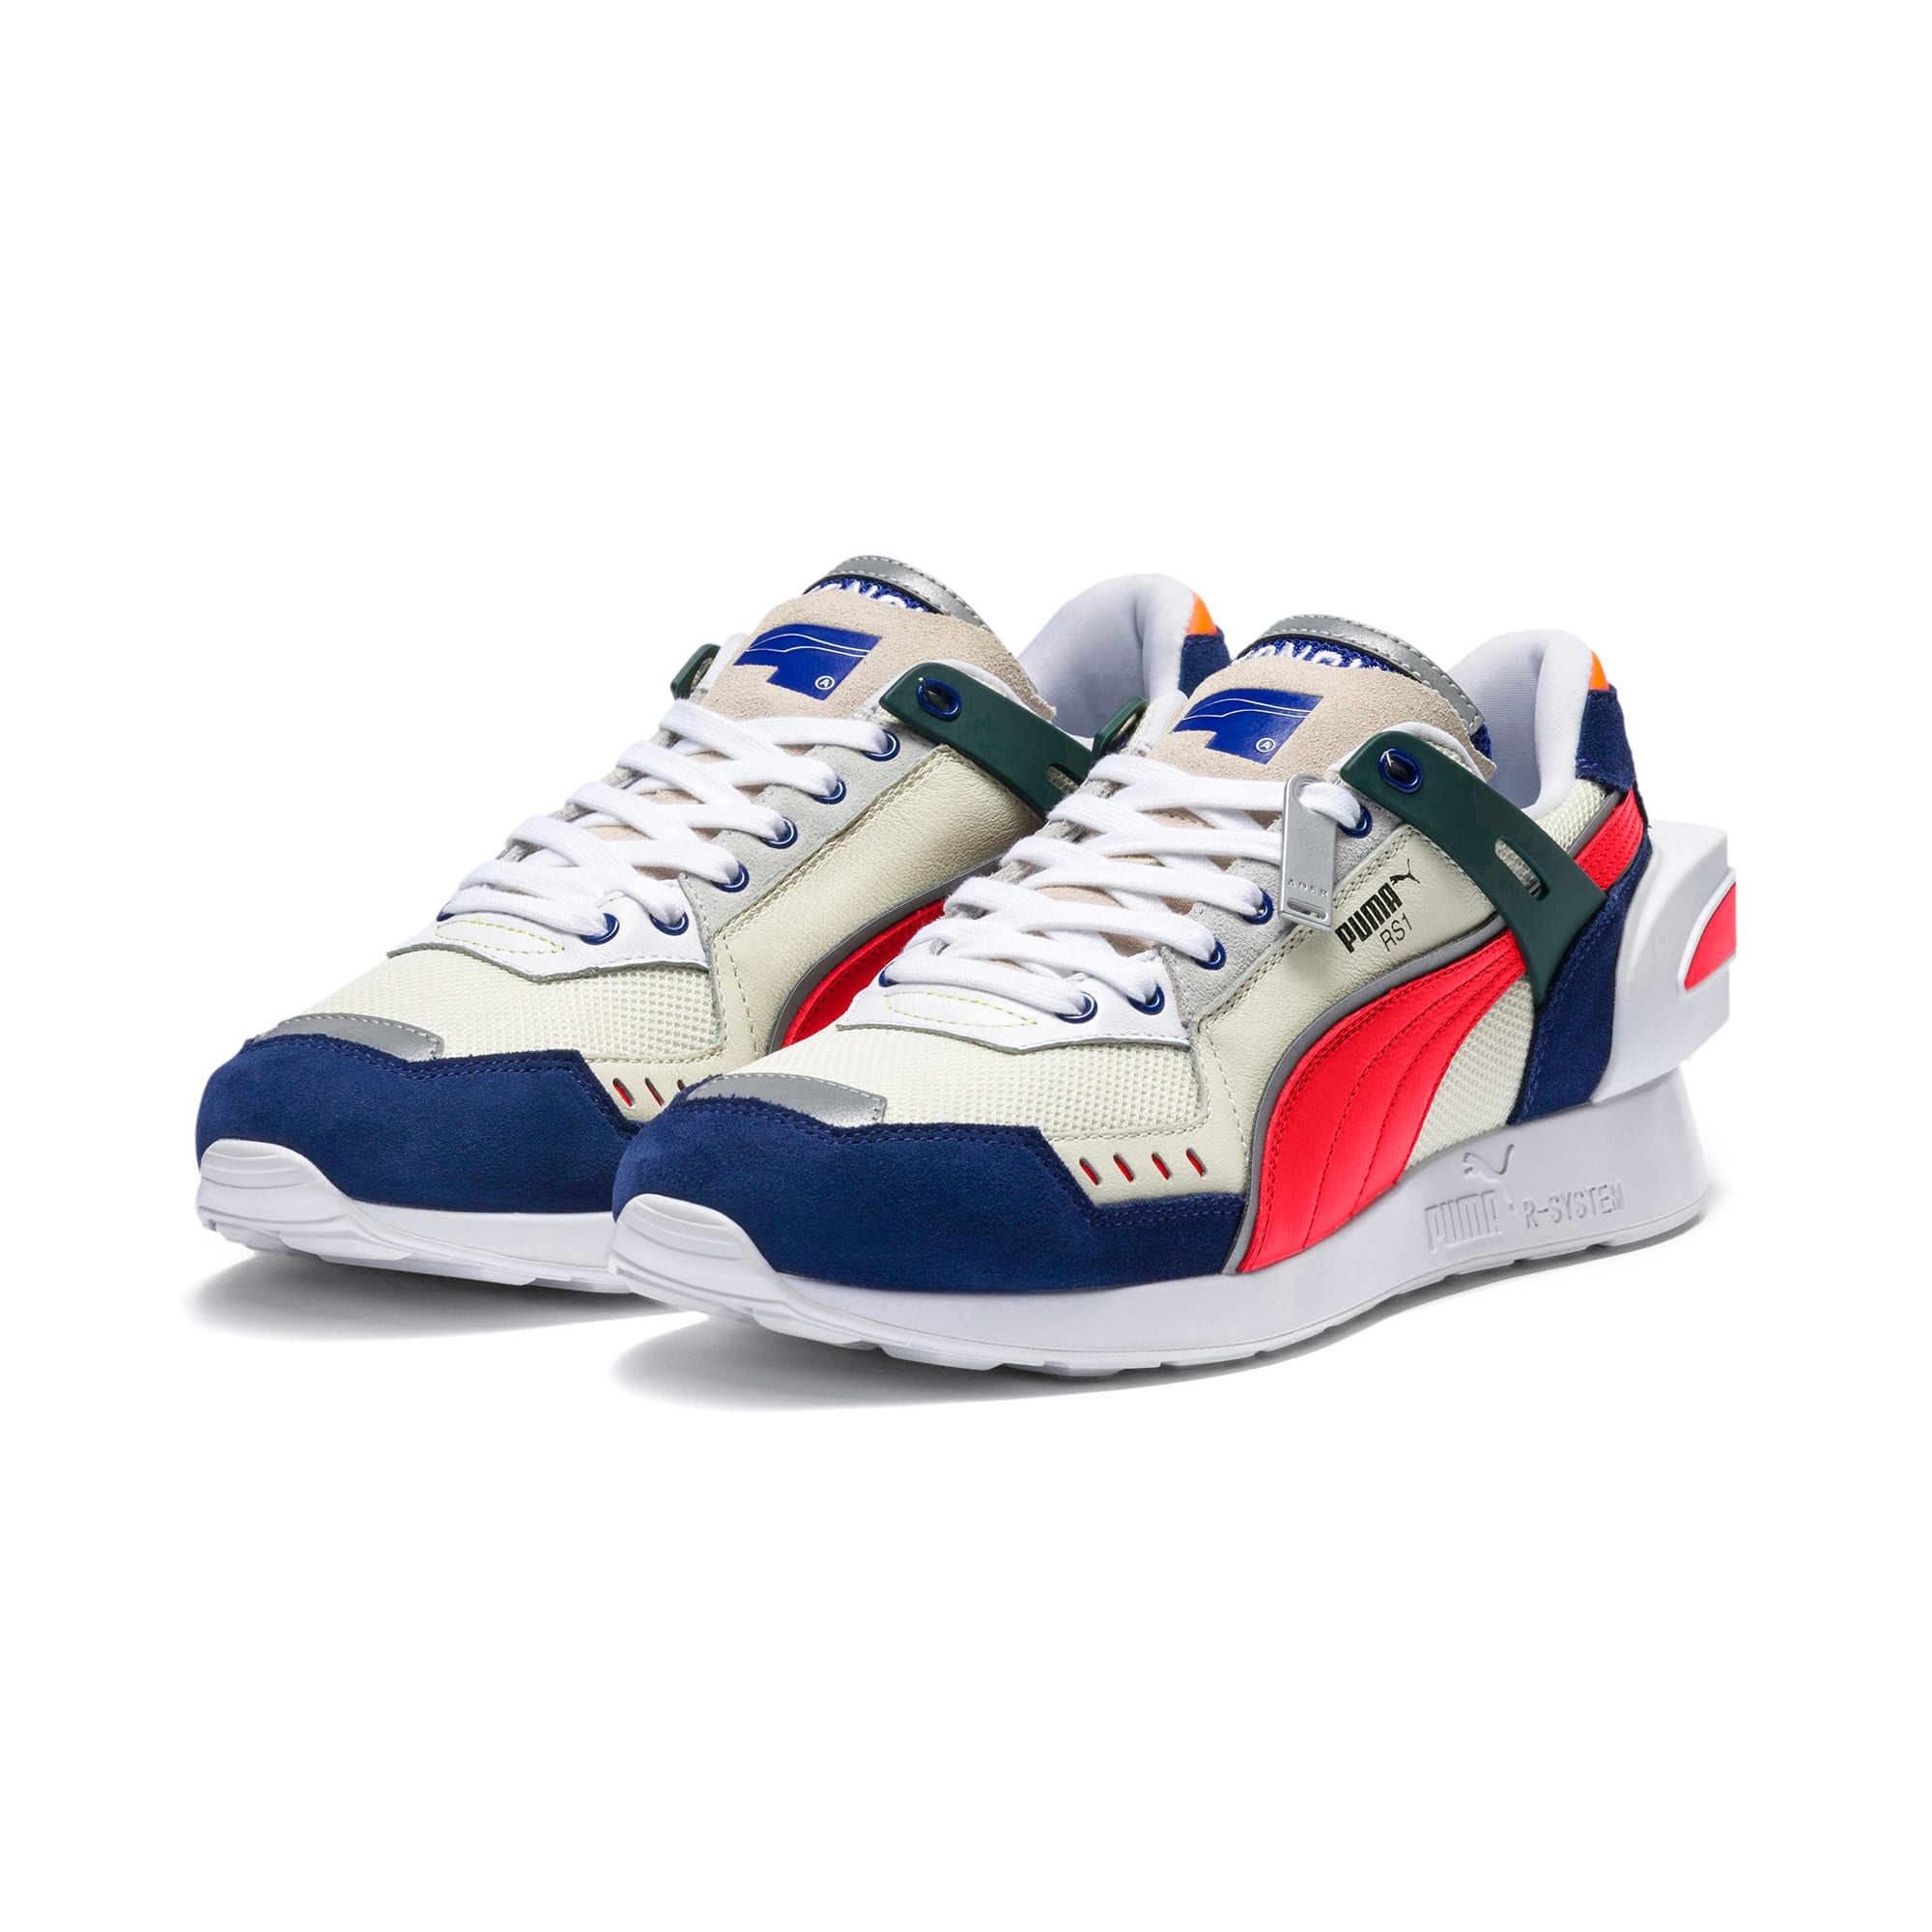 Thumbnail 3 of PUMA x ADER ERROR RS-1 Sneakers, Whisper White-Blueprint-Red, medium